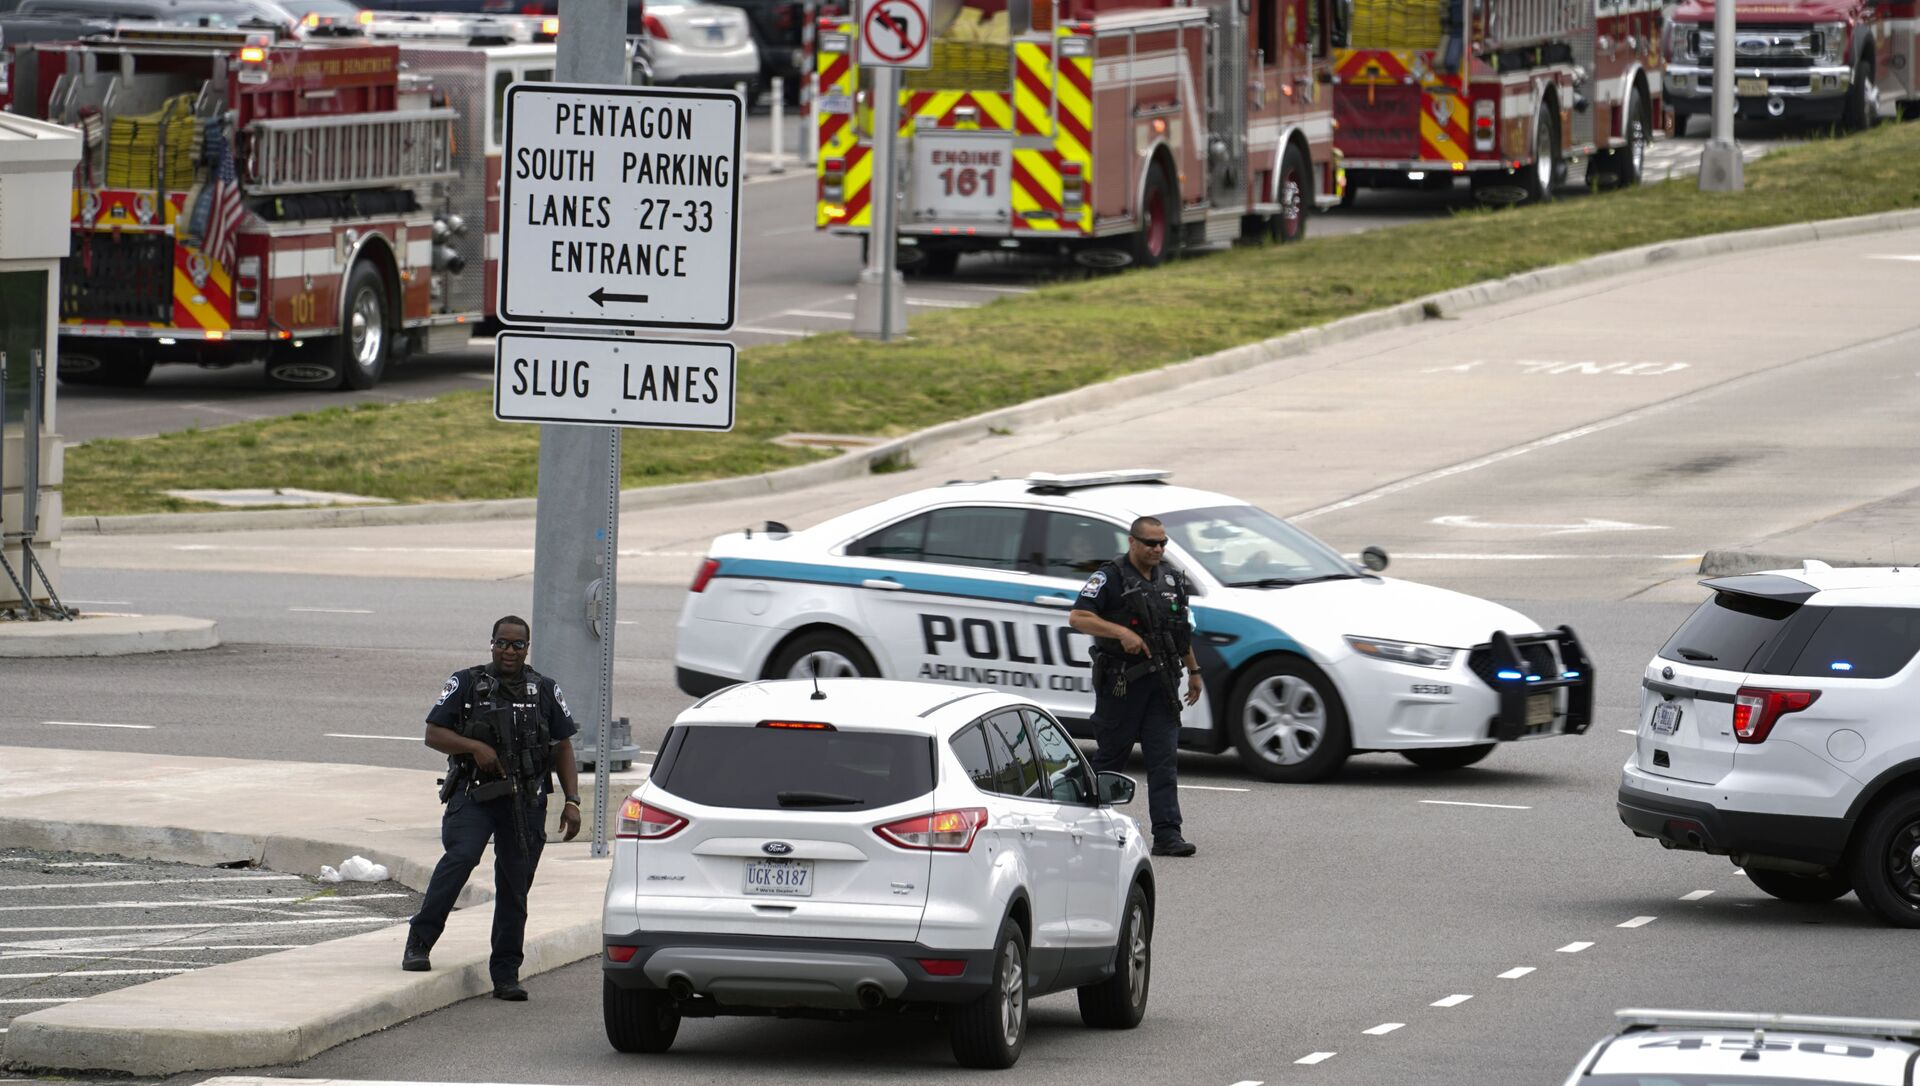 Emergency vehicles are seen outside the Pentagon Metro area Tuesday, Aug. 3, 2021, at the Pentagon in Washington. The Pentagon is on lockdown after multiple gunshots were fired near a platform by the facility's Metro station. - Sputnik International, 1920, 03.08.2021